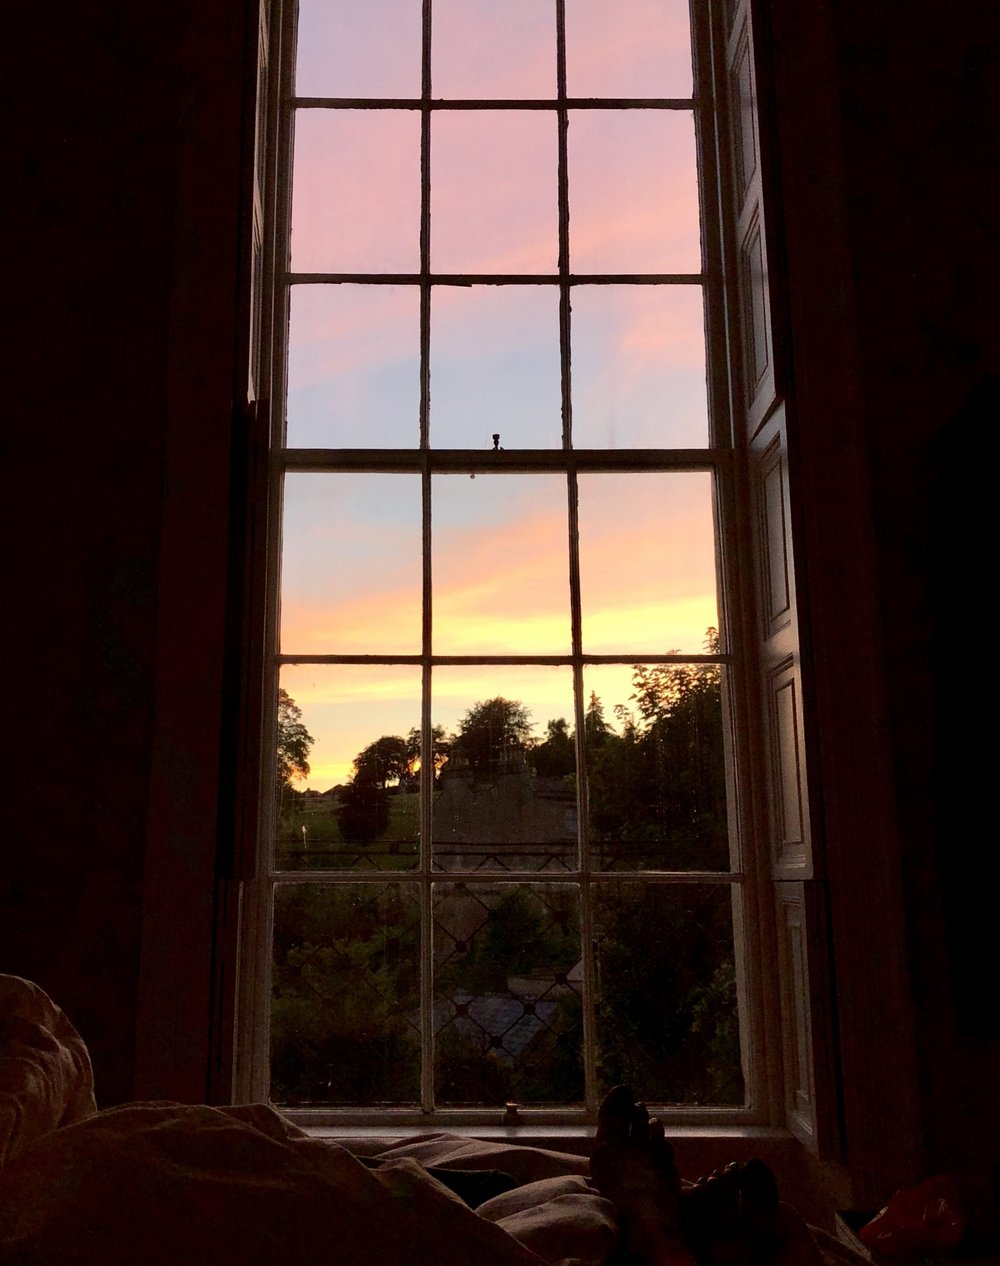 The summer sunset from my bedroom window